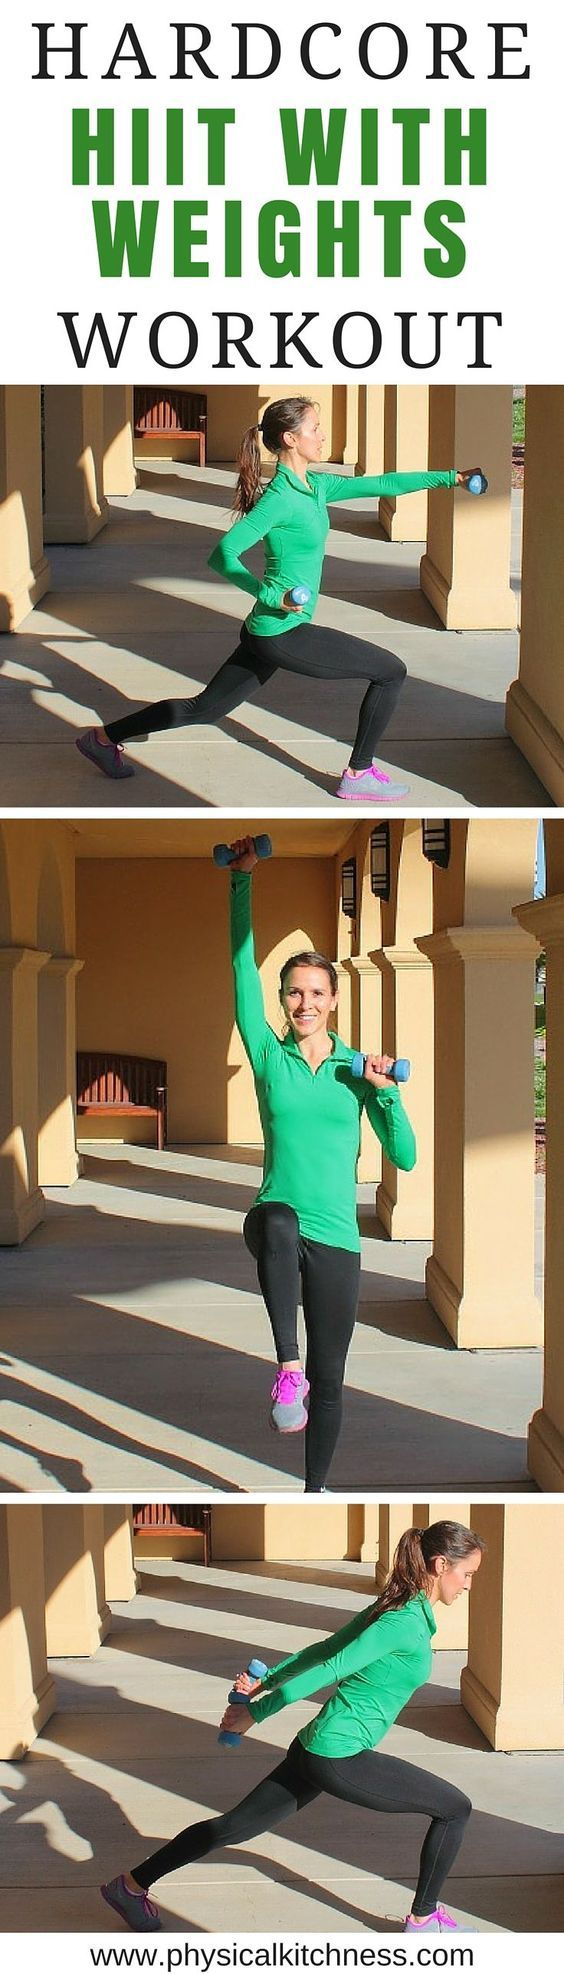 25 Minute HIIT Workout // 10, 30-second intervals with hand weights #strong #fitness #burnbabyburn